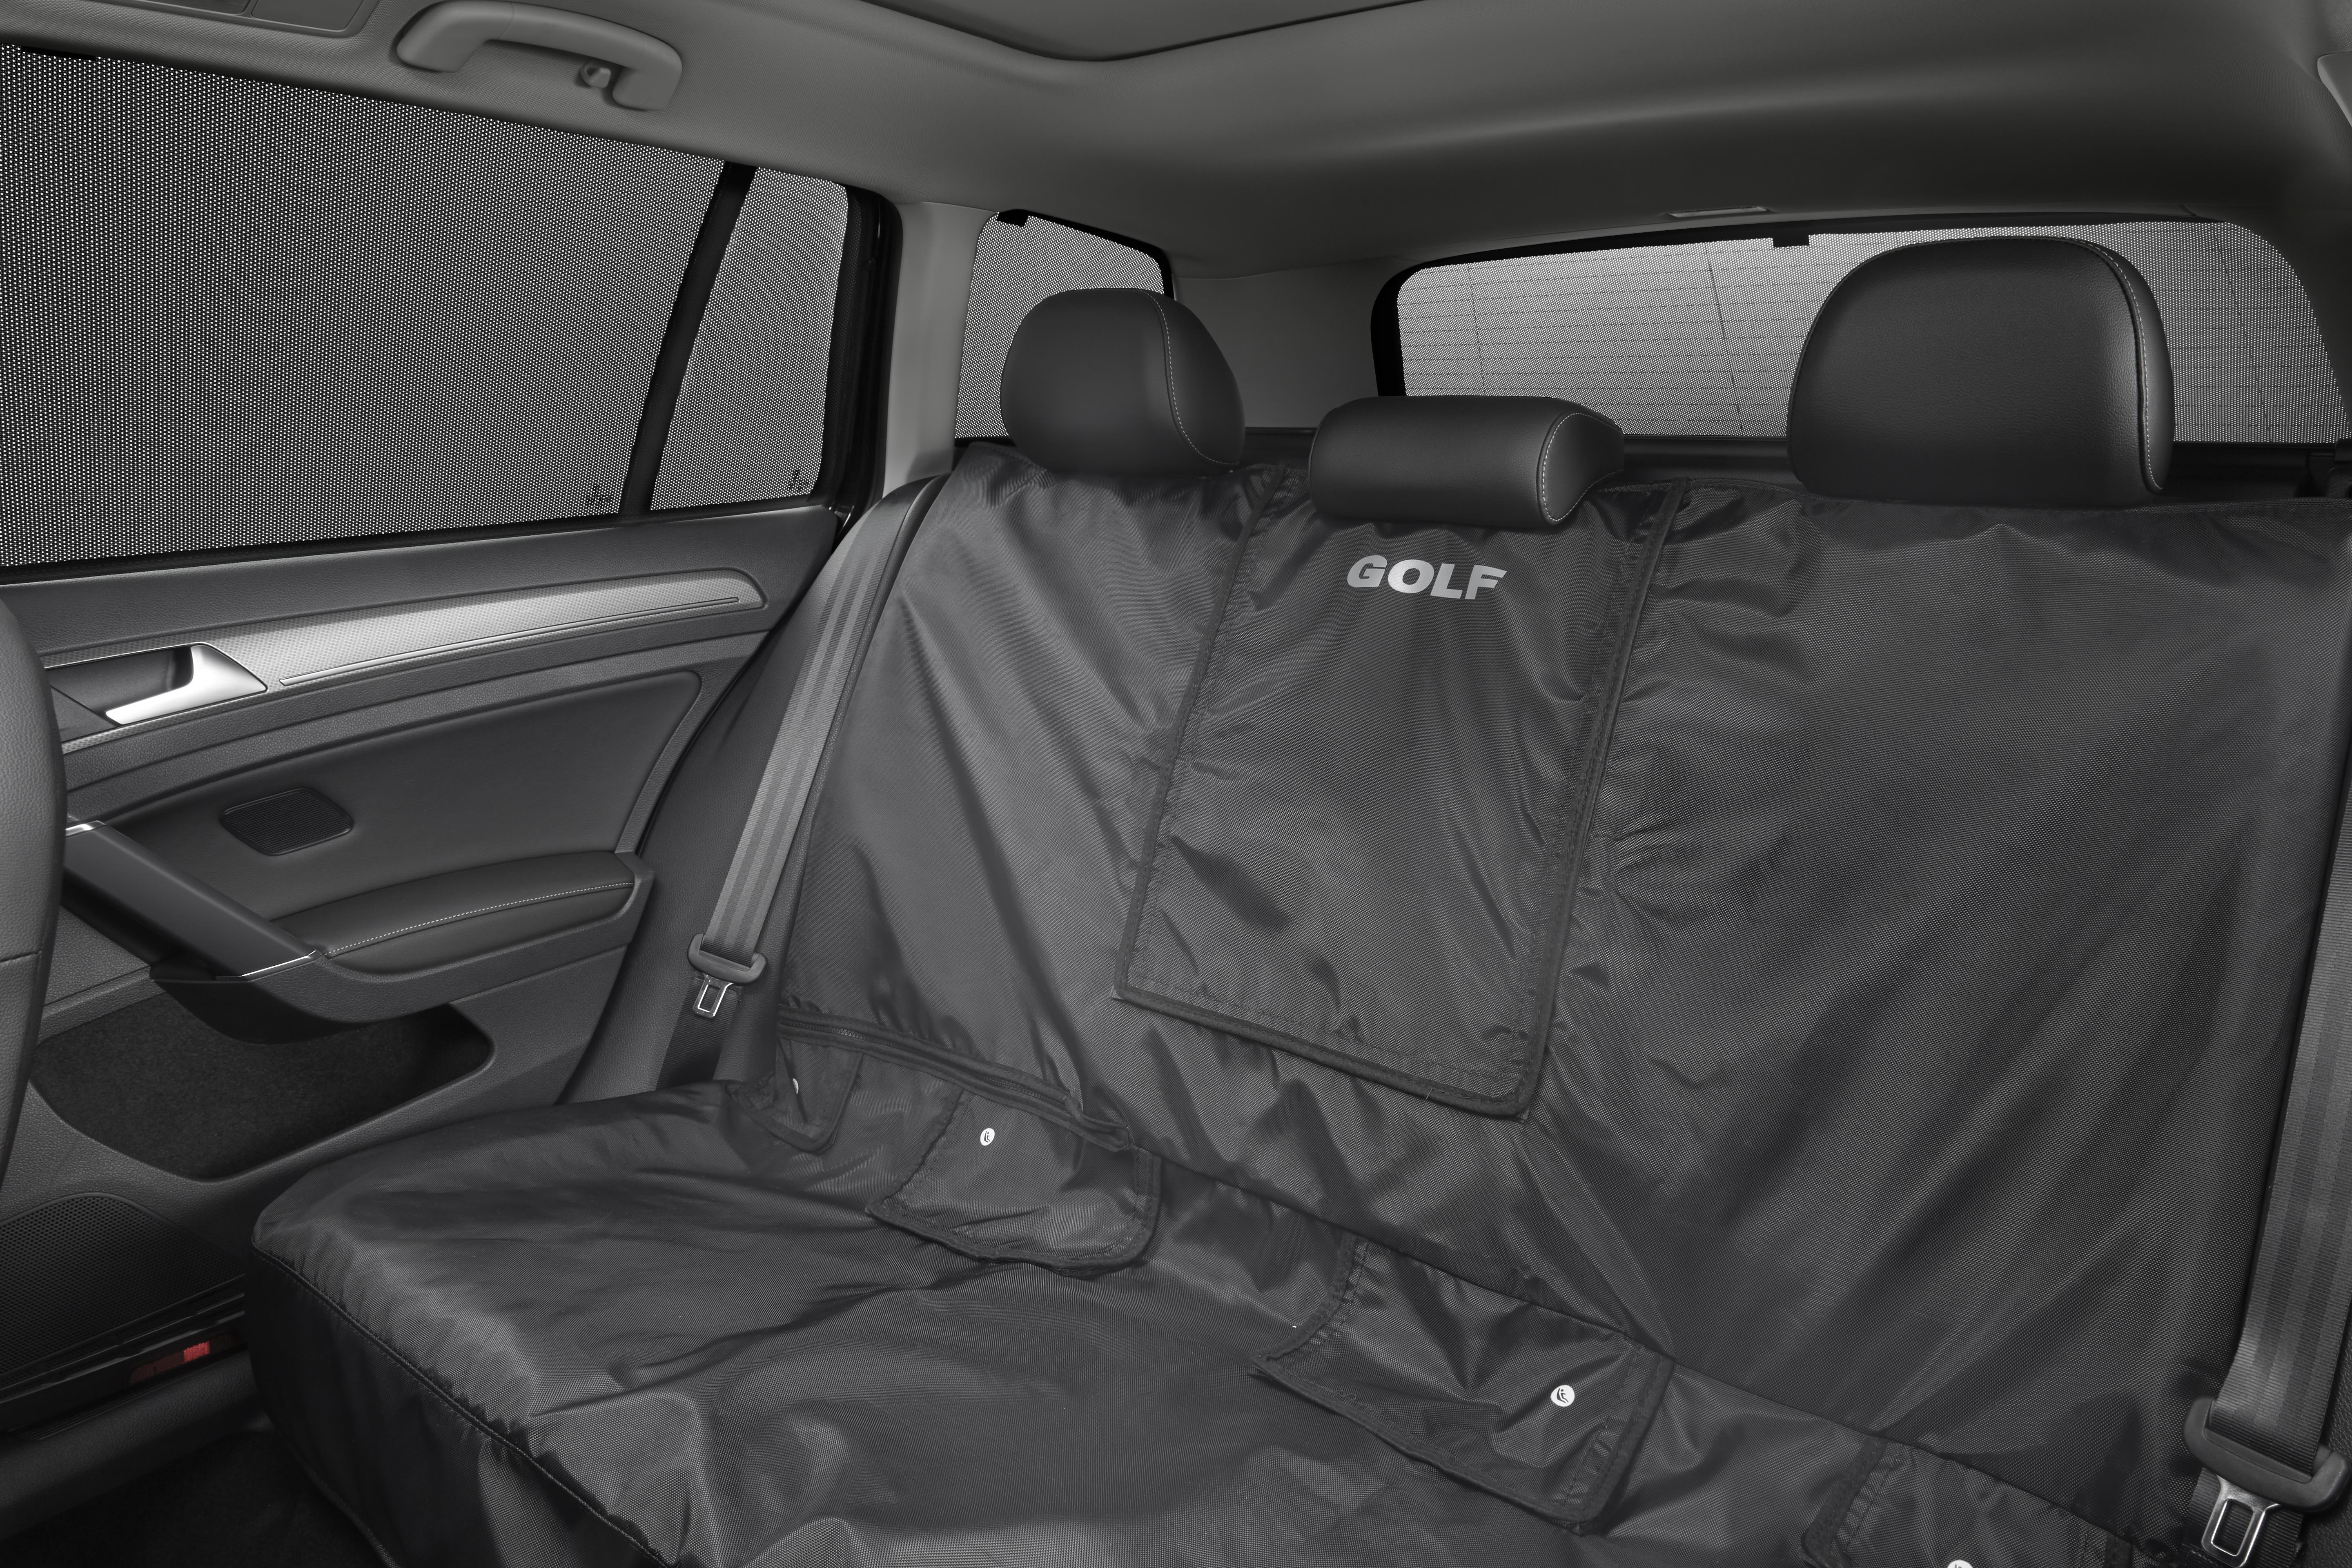 2015 Volkswagen Golf Rear Seat Cover With Golf Logo